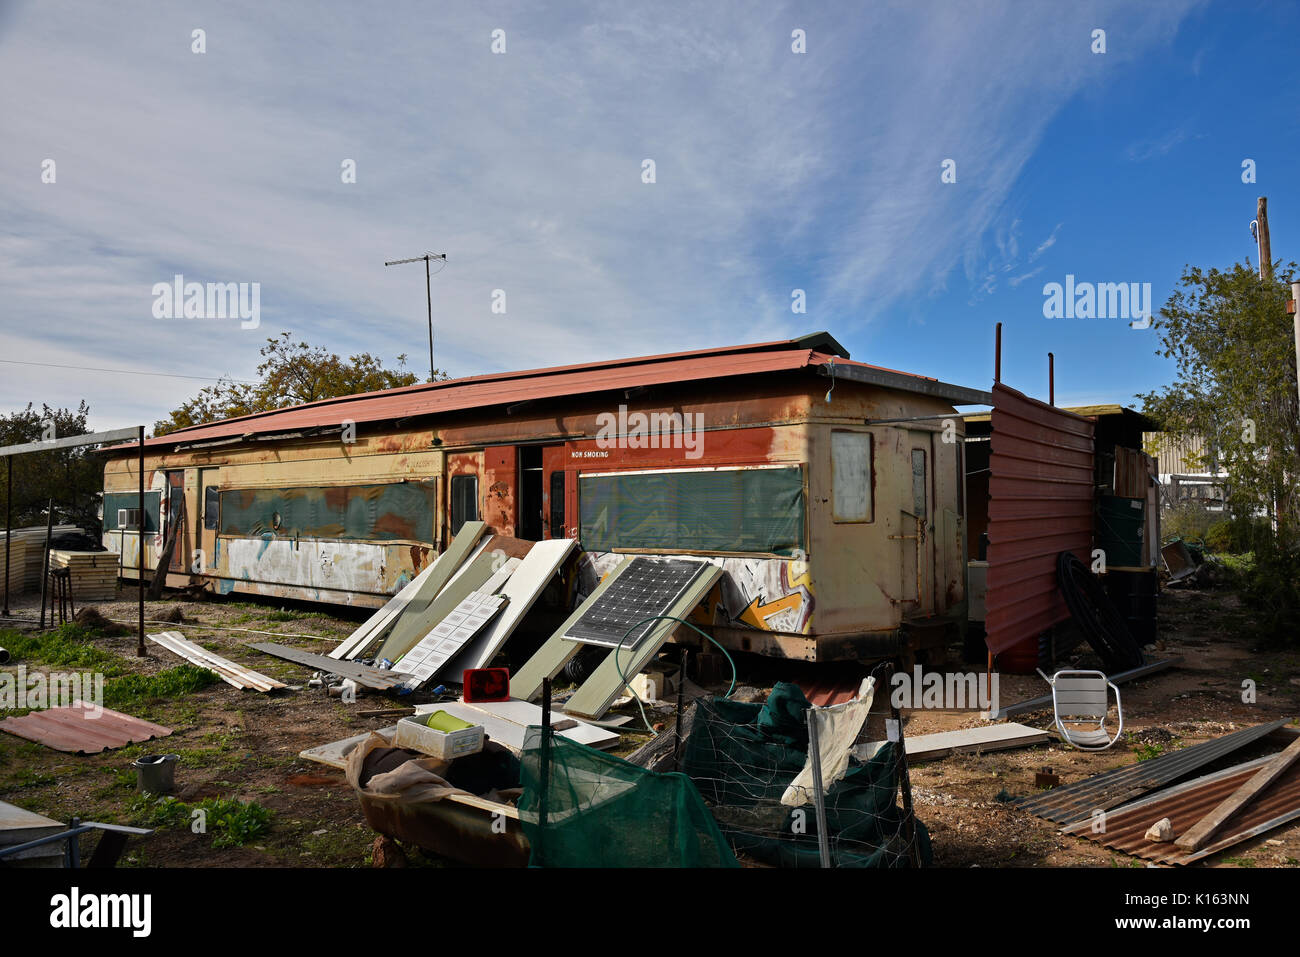 railway carriage being converted to live in in Lightning Ridge, an opal mining twon in outback Australia - Stock Image